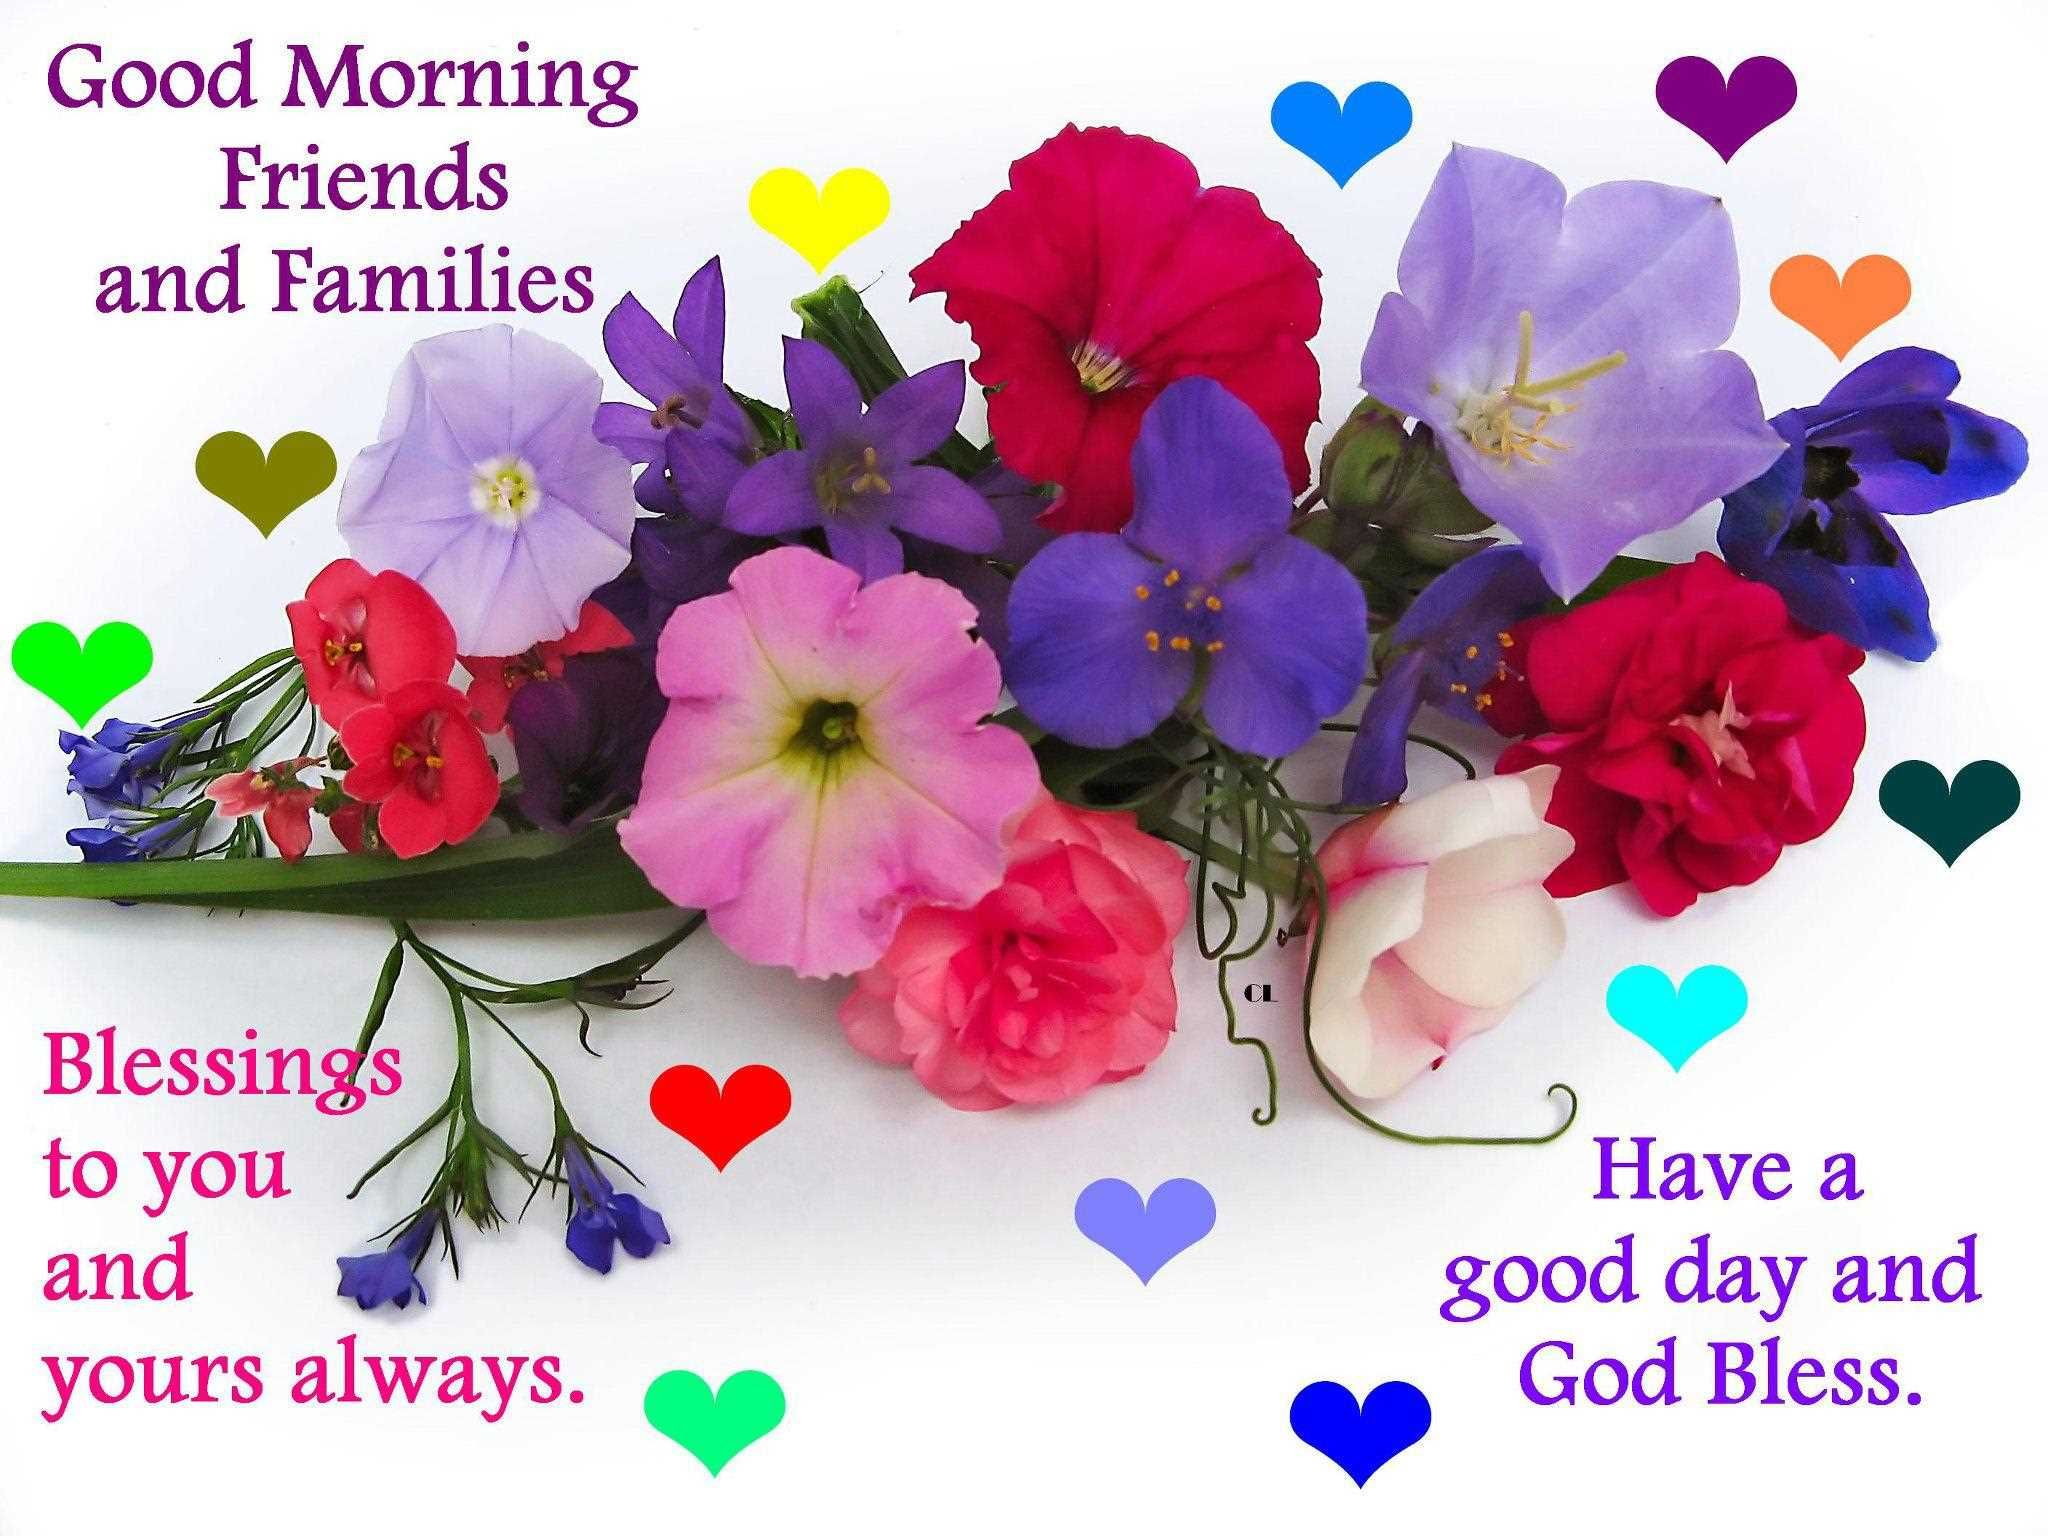 Good Morning Friends and Family